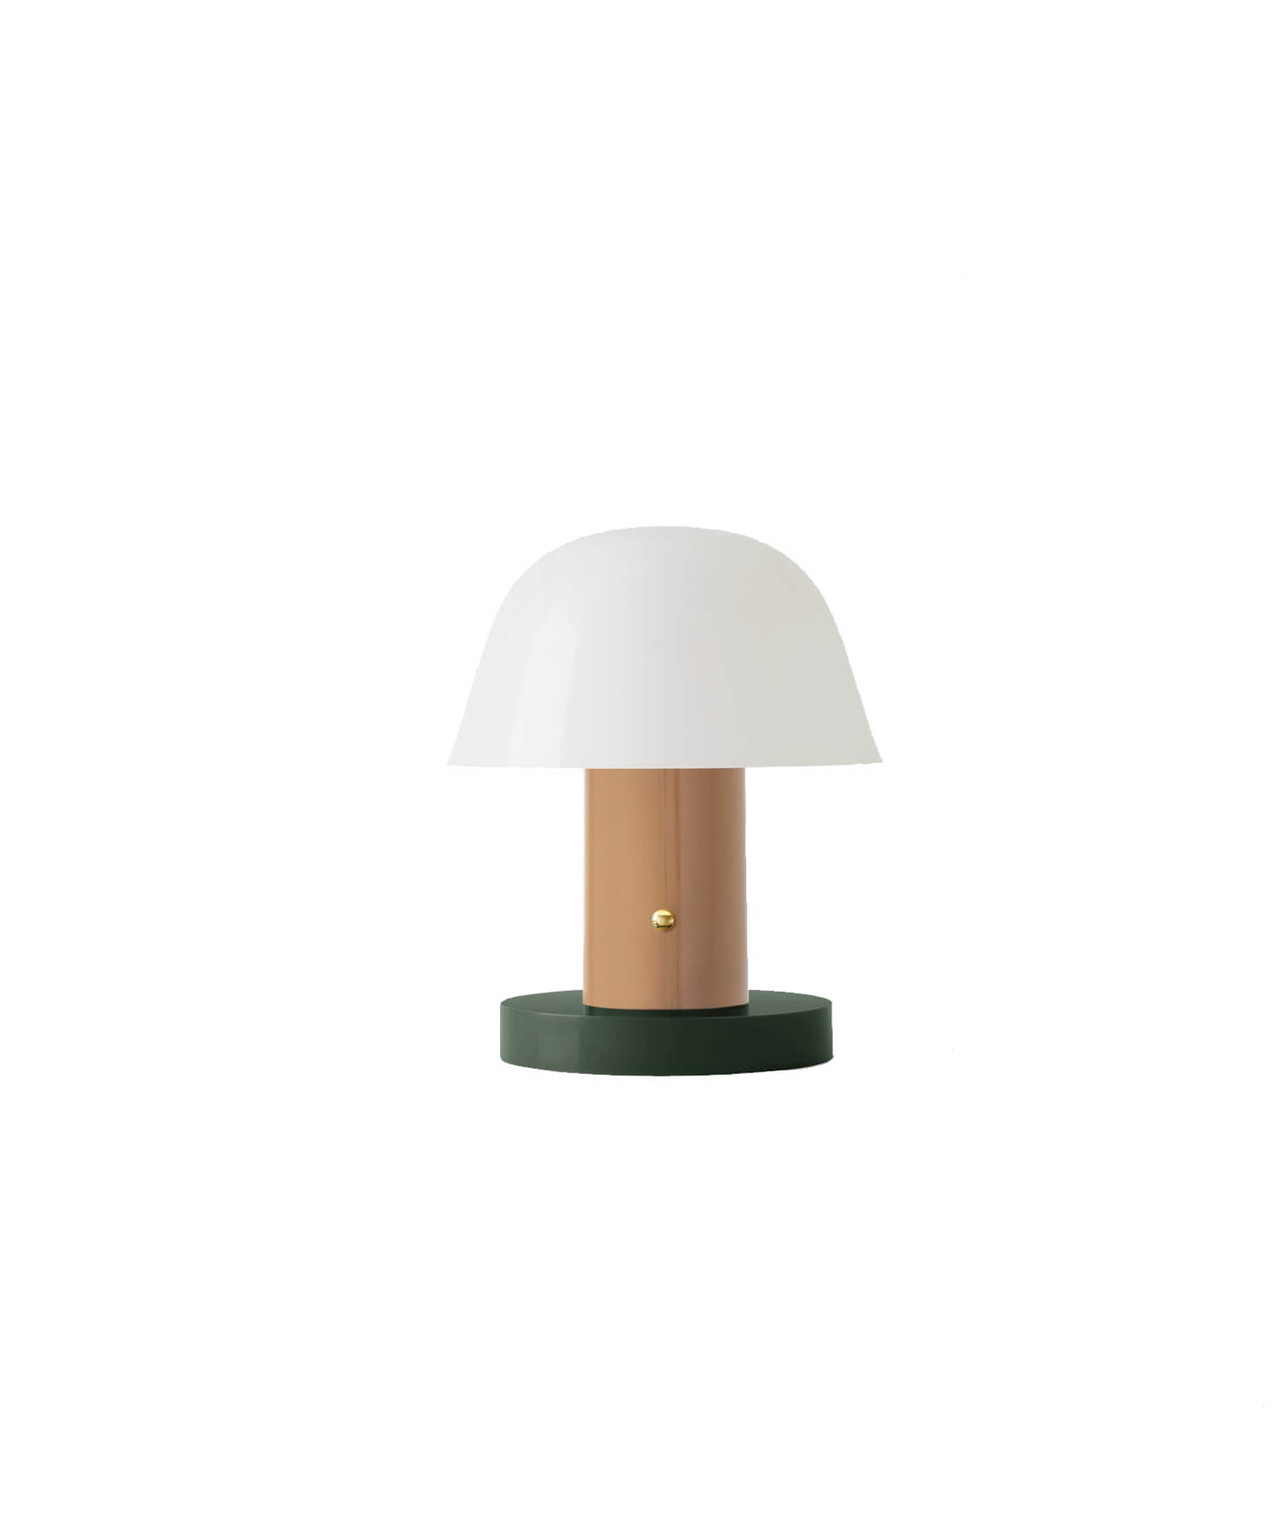 Setago Jh27 Table Lamp Forest